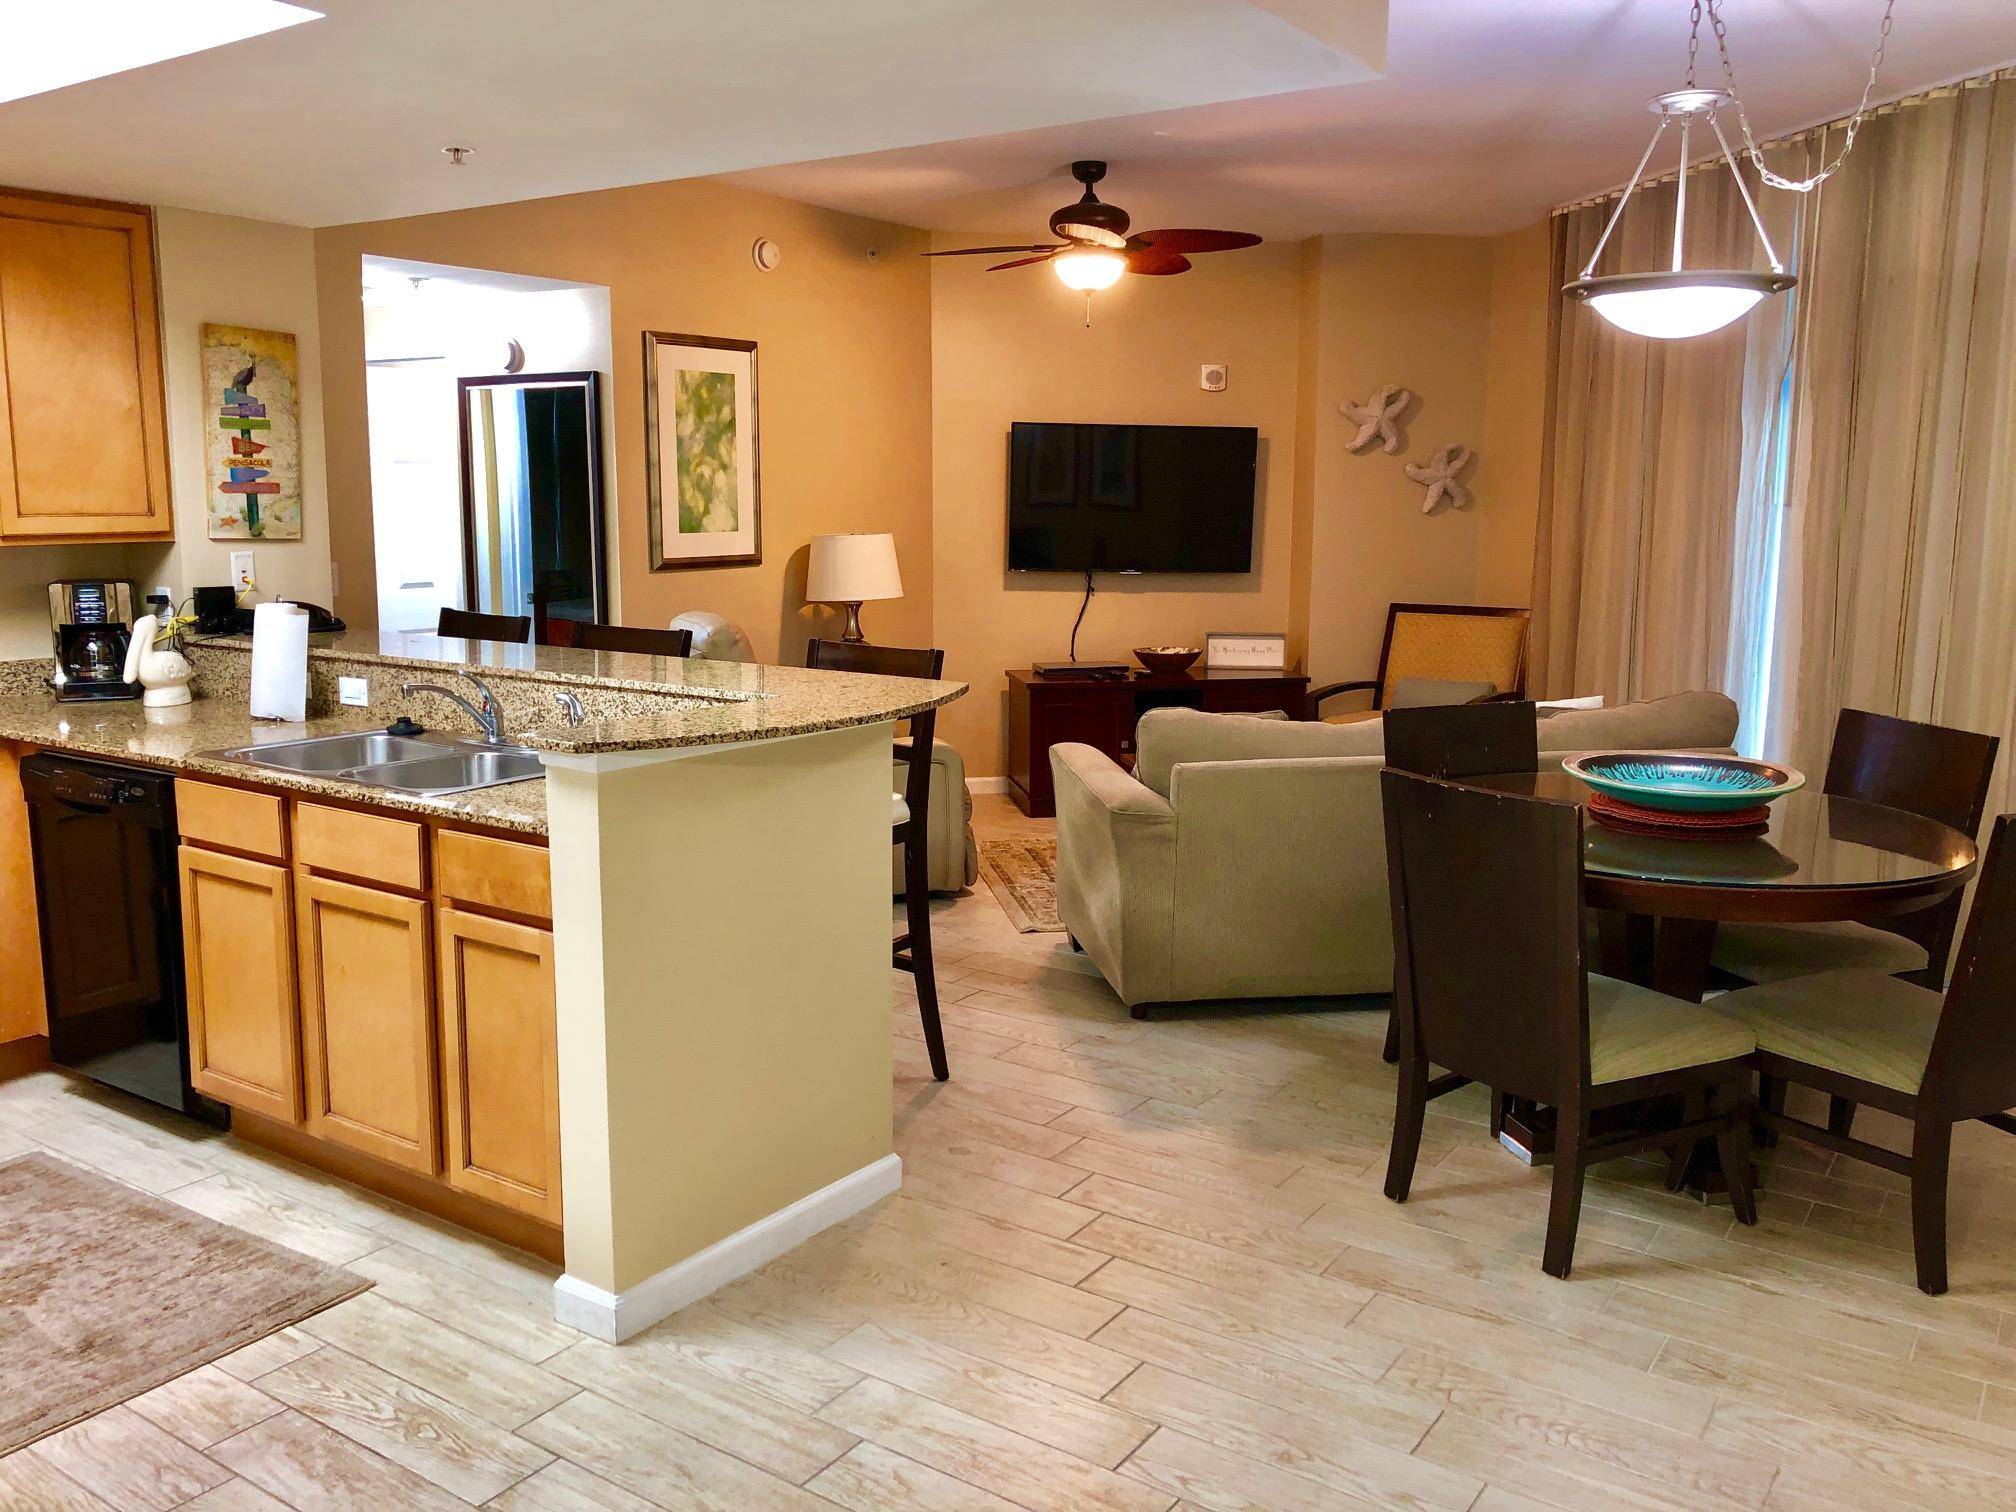 Full 2 bedroom inside corner unit. Seller just completed a light renovation and replaced all carpet with wood-look tile. All fans and TV's were recently replaced as well. Great views of 11,000 sq ft resort style pool. Other amenities include beach shuttle, tennis courts, basketball court, fitness center, and covered parking. Rental income has varied from $28,000-$32,000 depending on owner use.